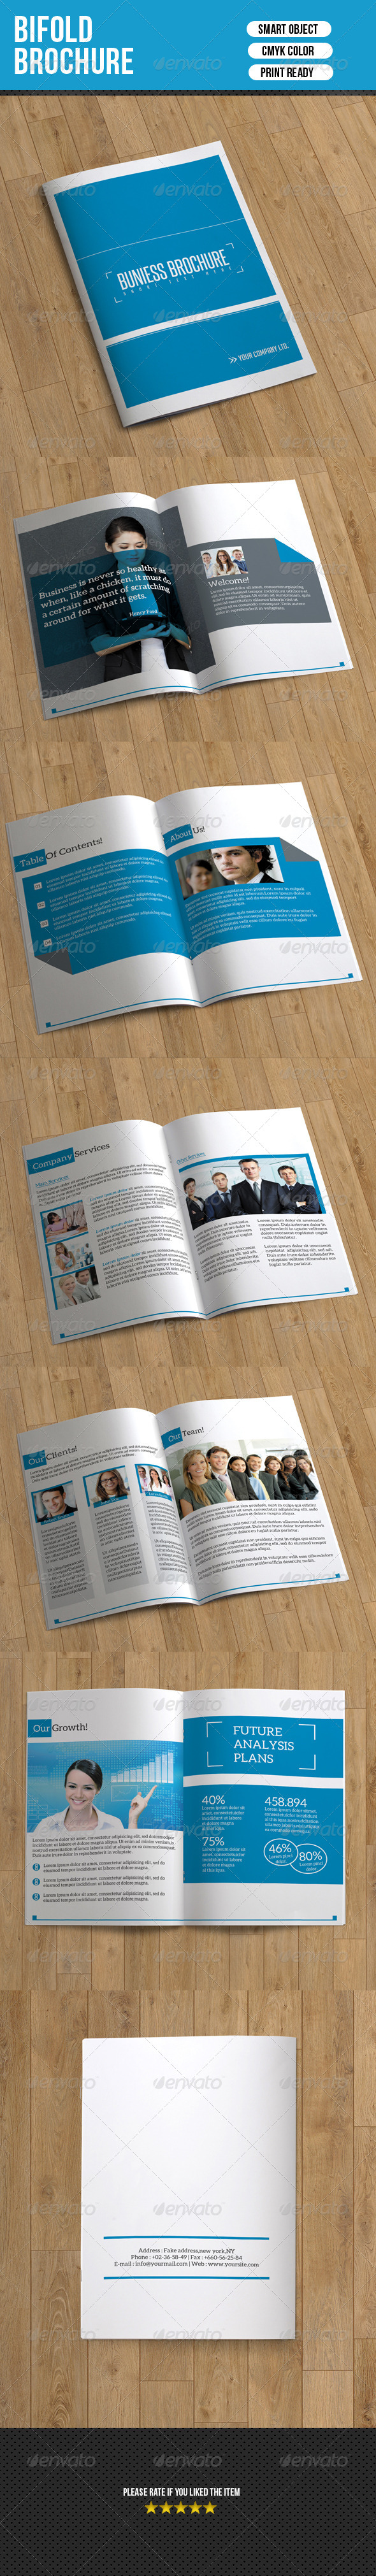 GraphicRiver Business Brochure-12 Pages 7309900